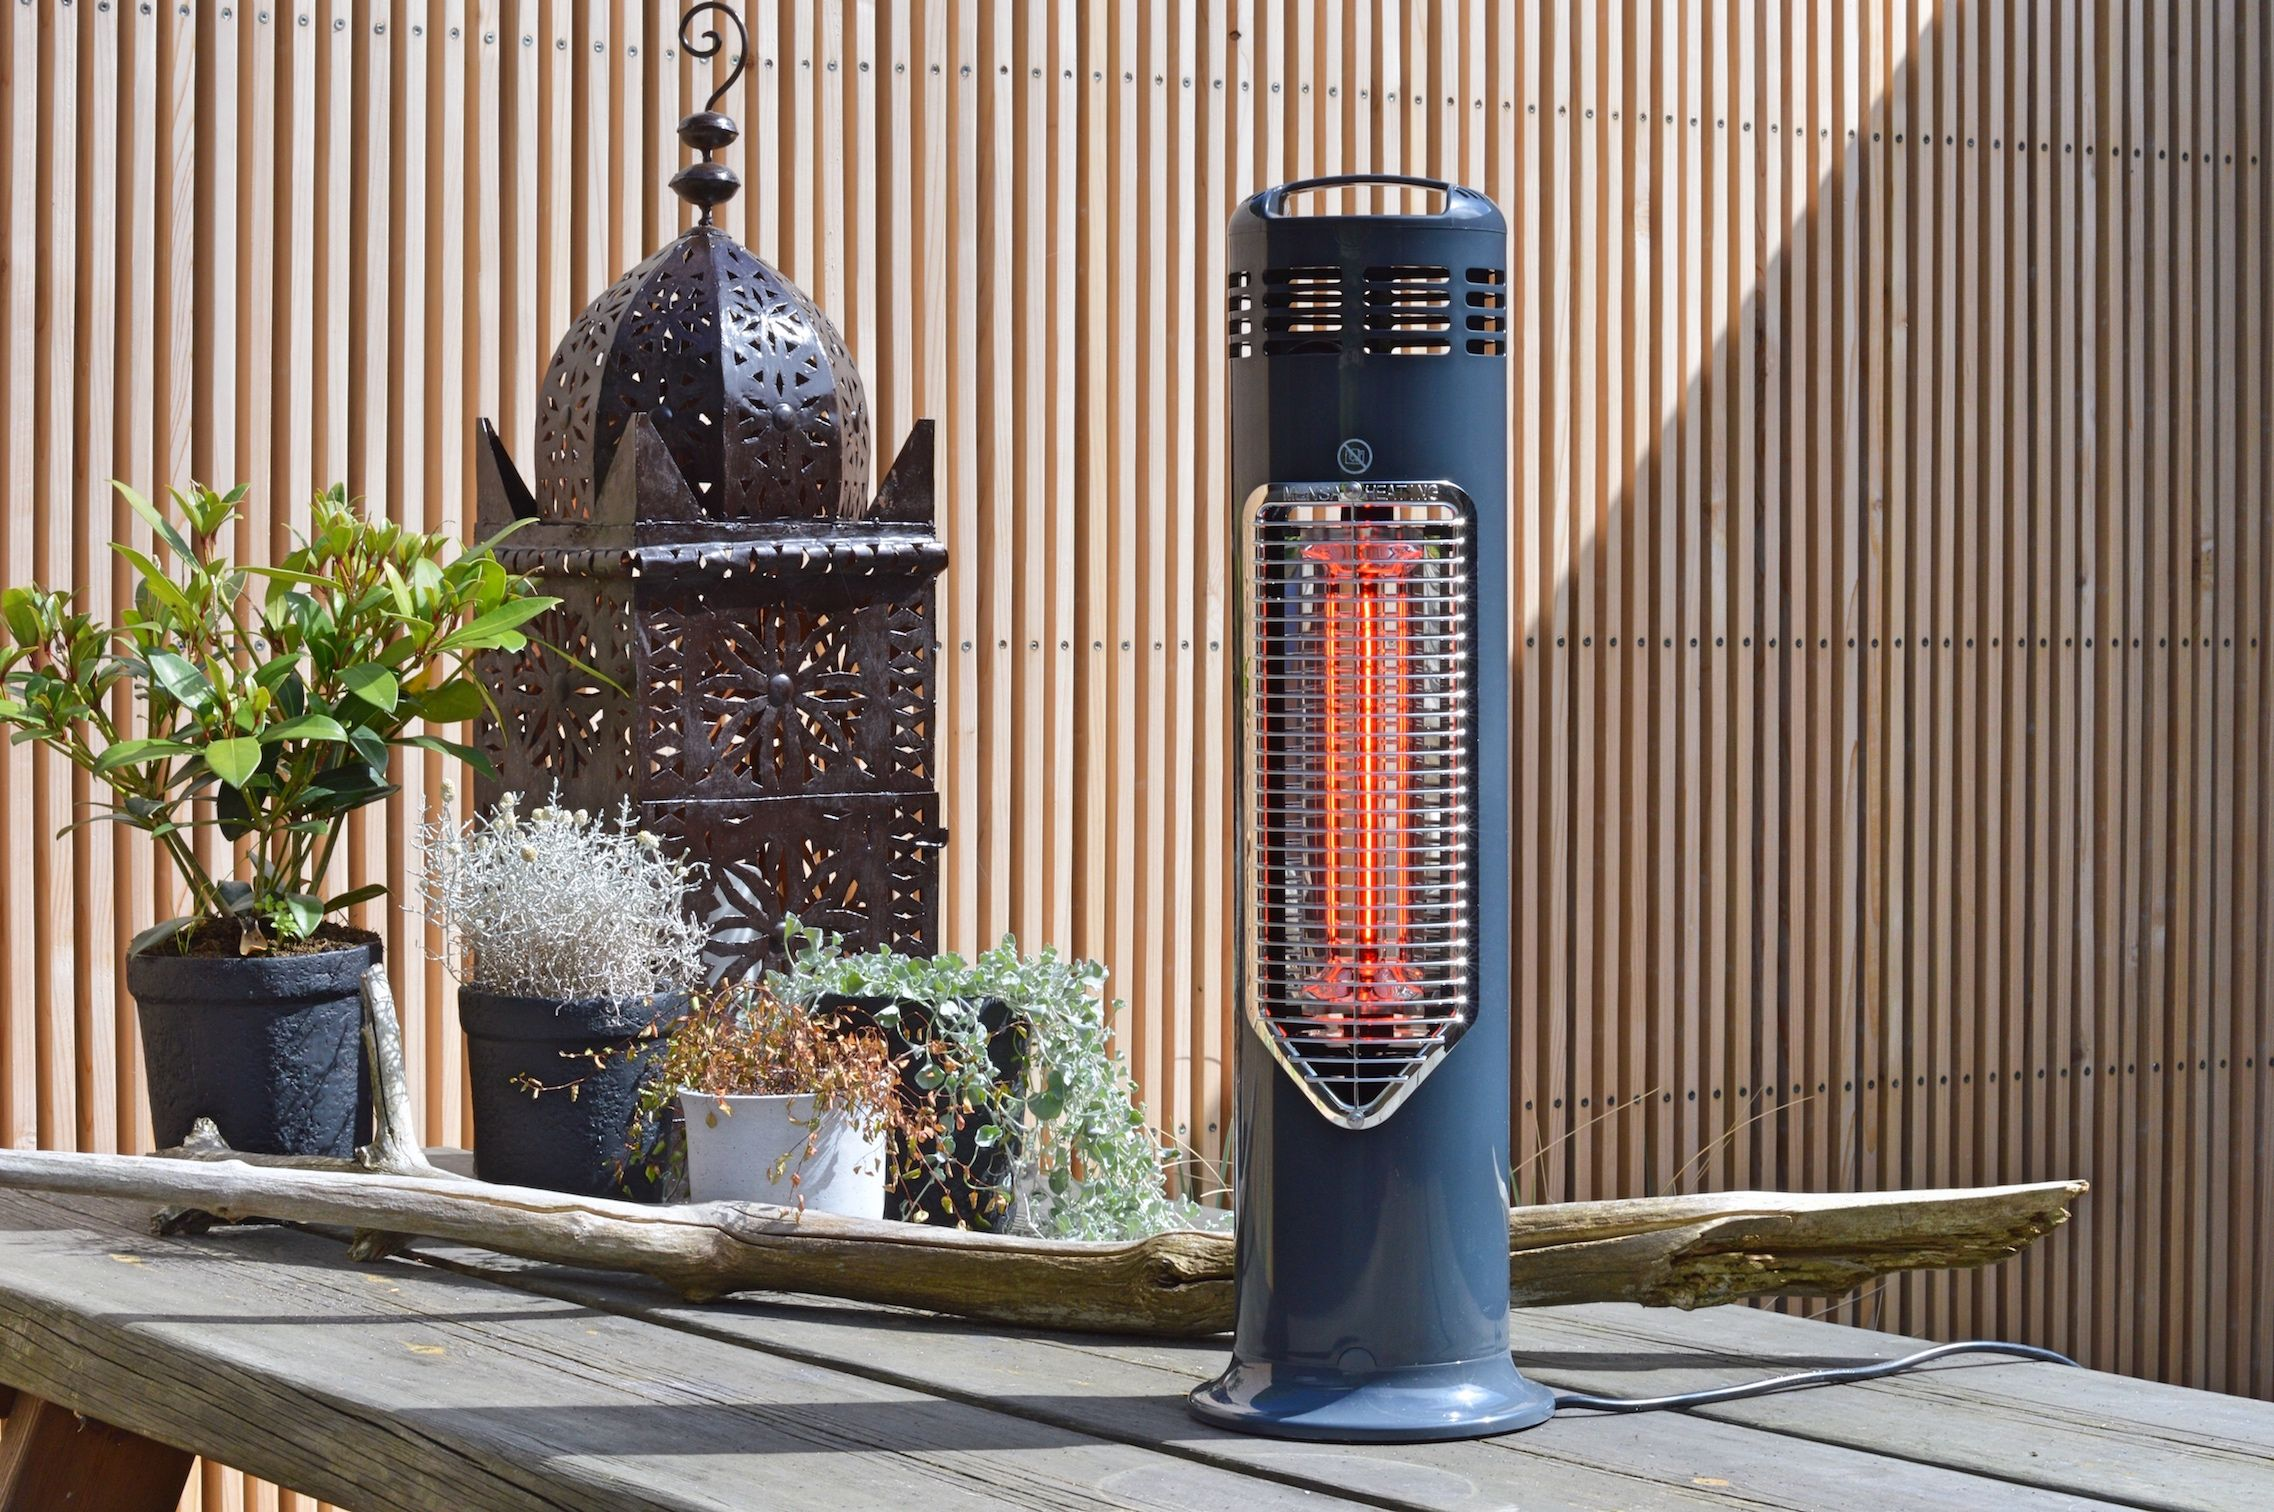 Outdoor Table Heating Safe To Touch Patio Heater Danish Design Imus Patio Heater Outdoor Heating Outdoor Heating Outdoor Heaters Outdoor Kitchen Design